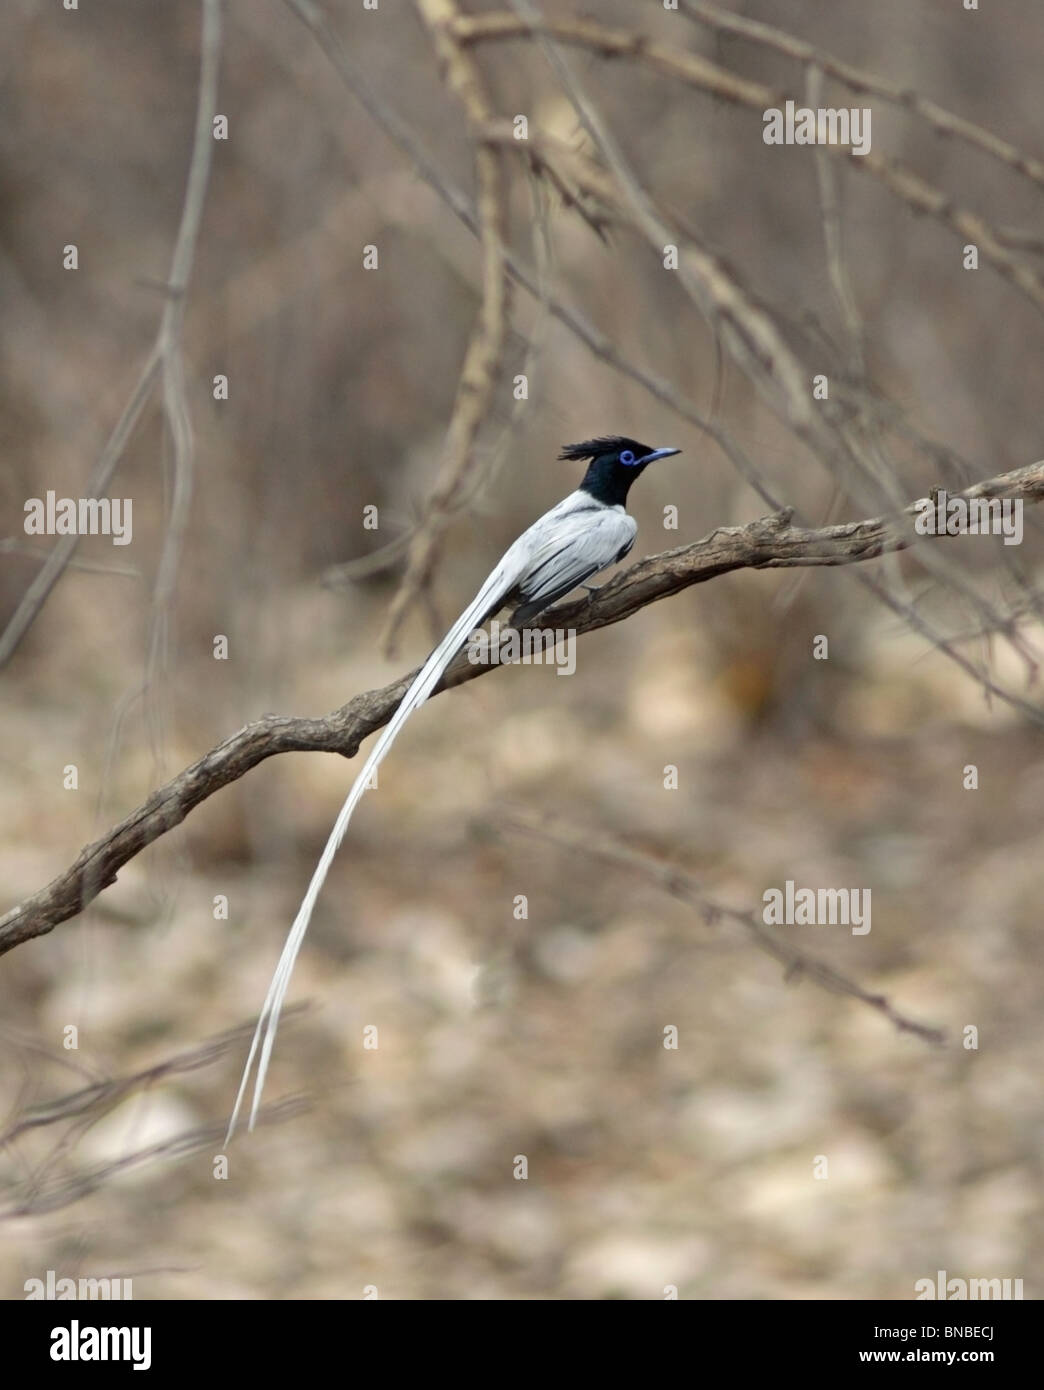 An Asian Paradise Flycatcher perched in a branch in Ranthambhore National Park, India Stock Photo